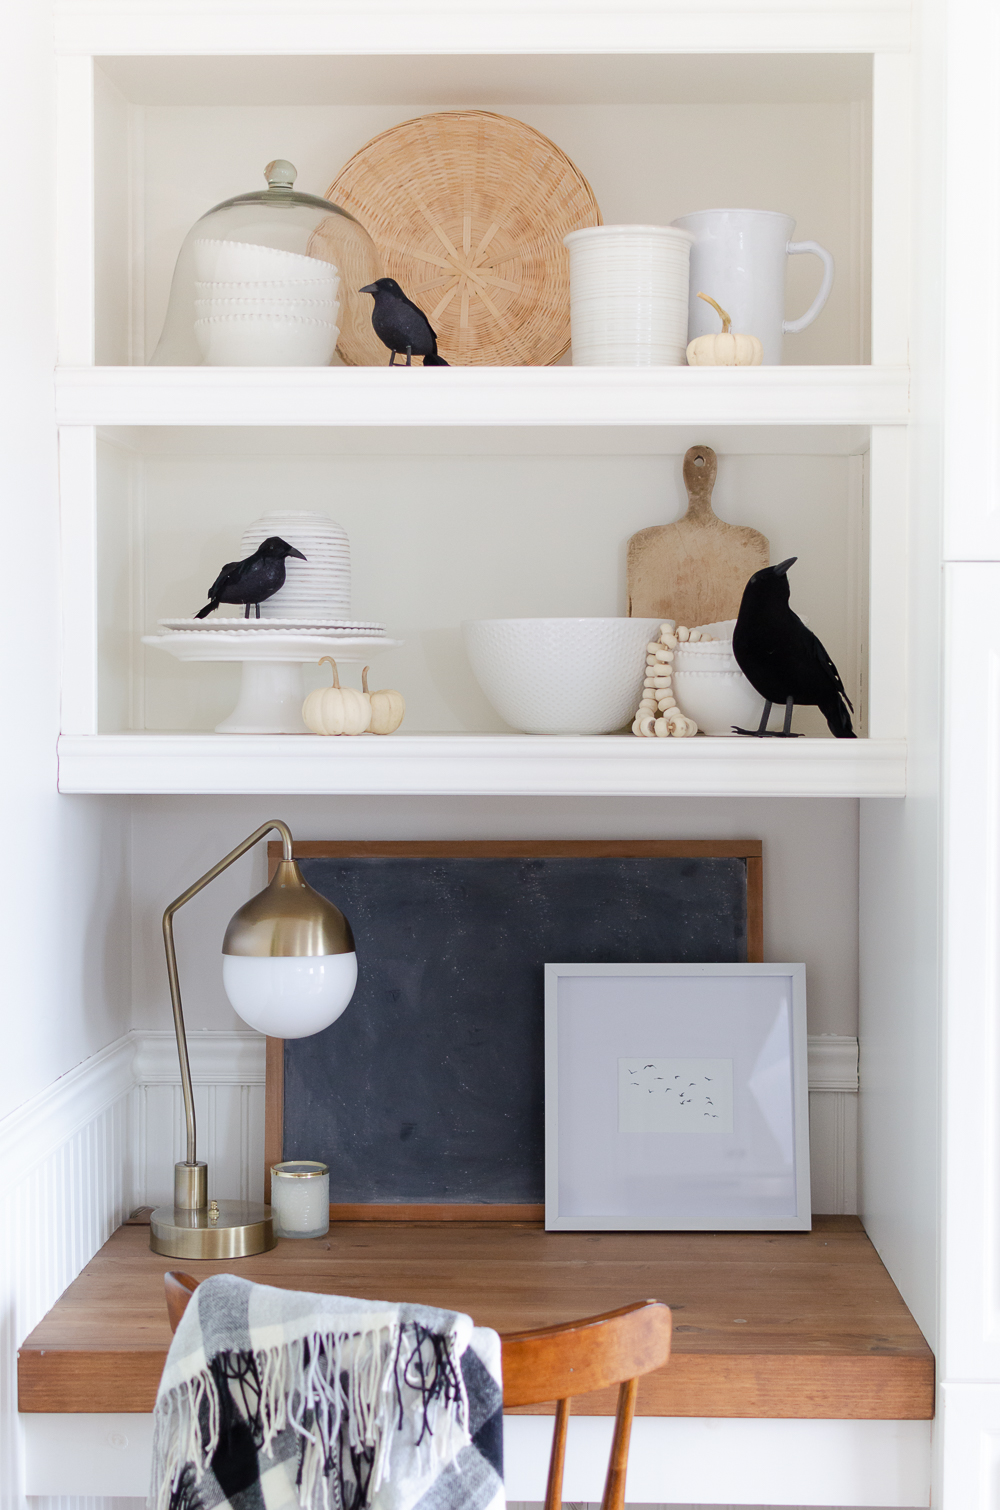 Mini white pumpkins and black crows are a simple way to add a touch of Halloween to your home.Get inspired and celebrate Halloween with 25+ easy decorating ideas.